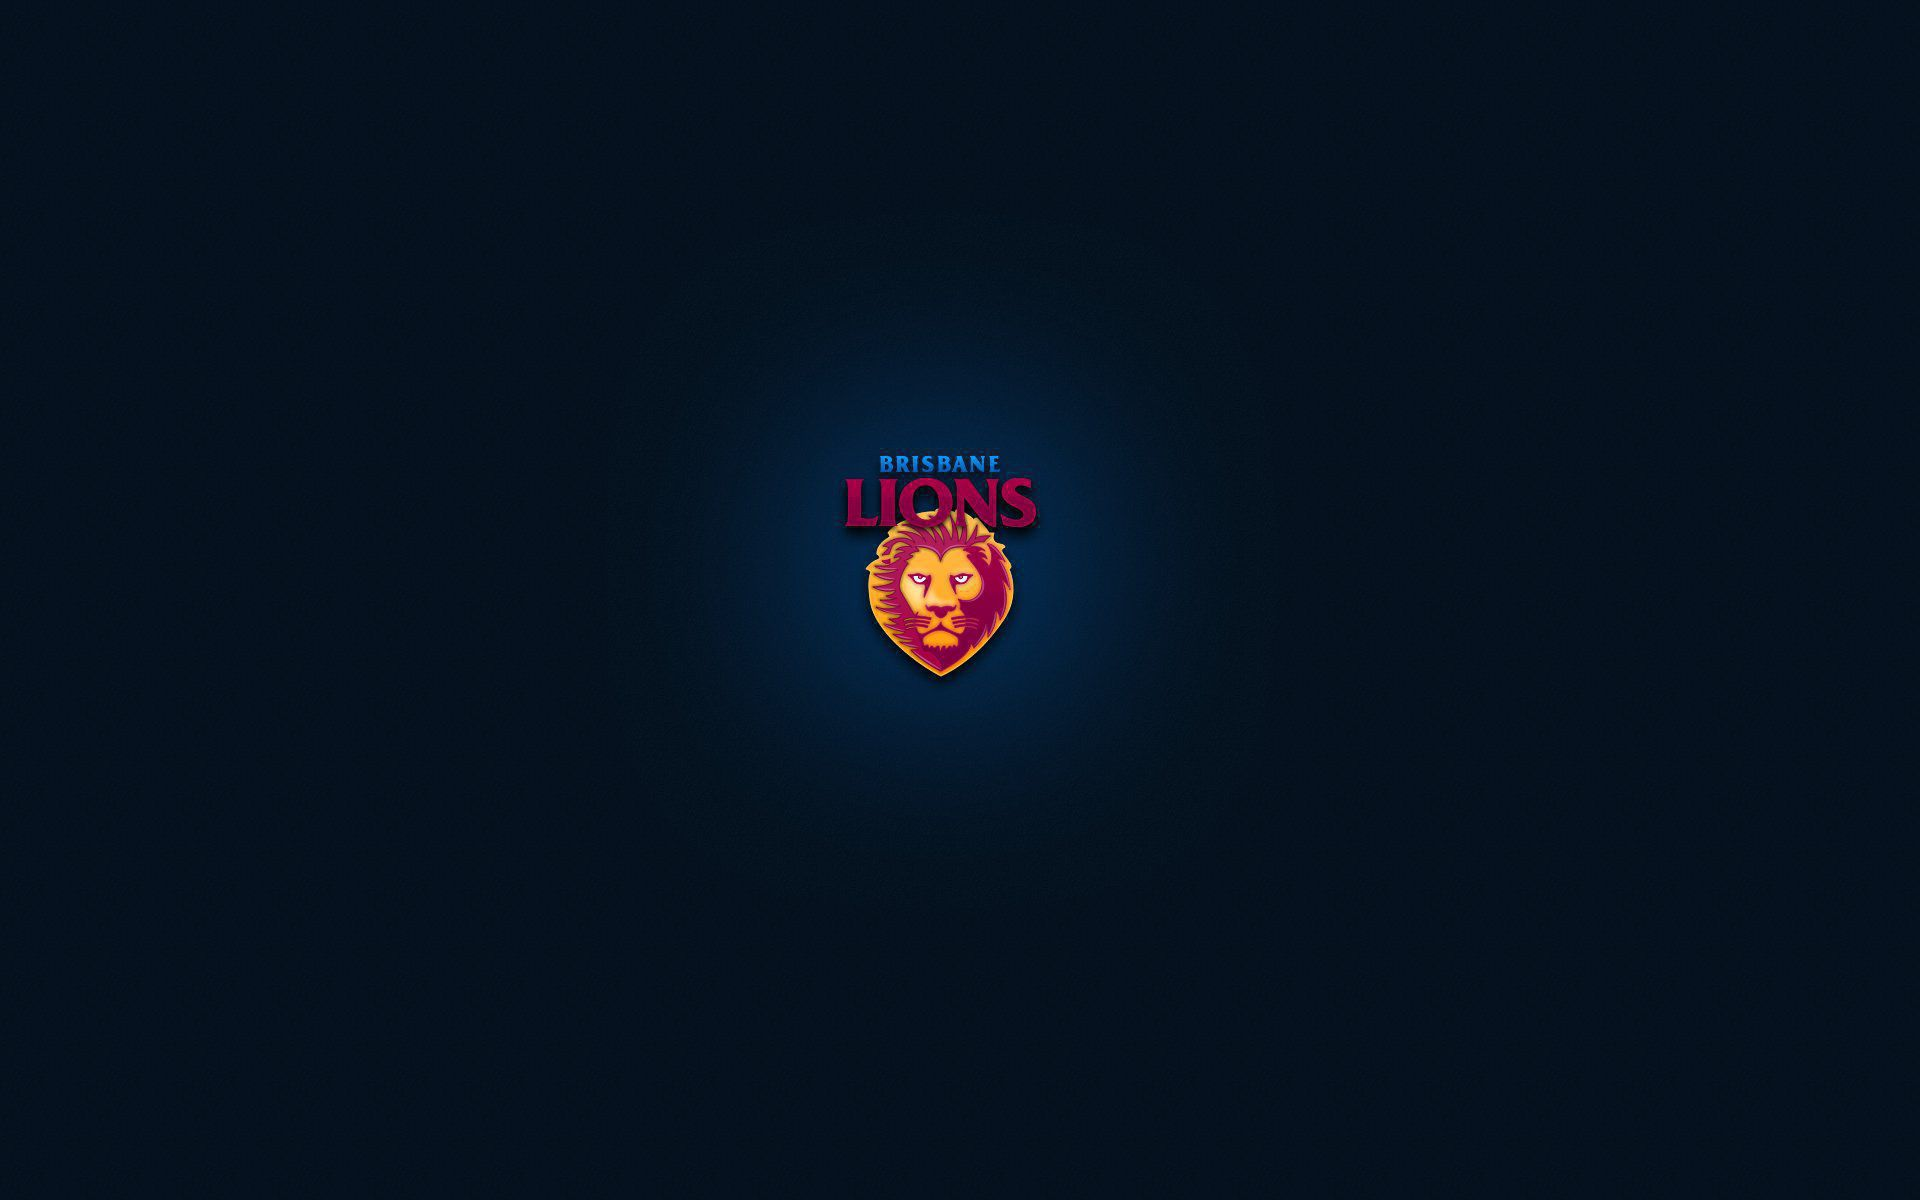 Brisbane Lions HD Background